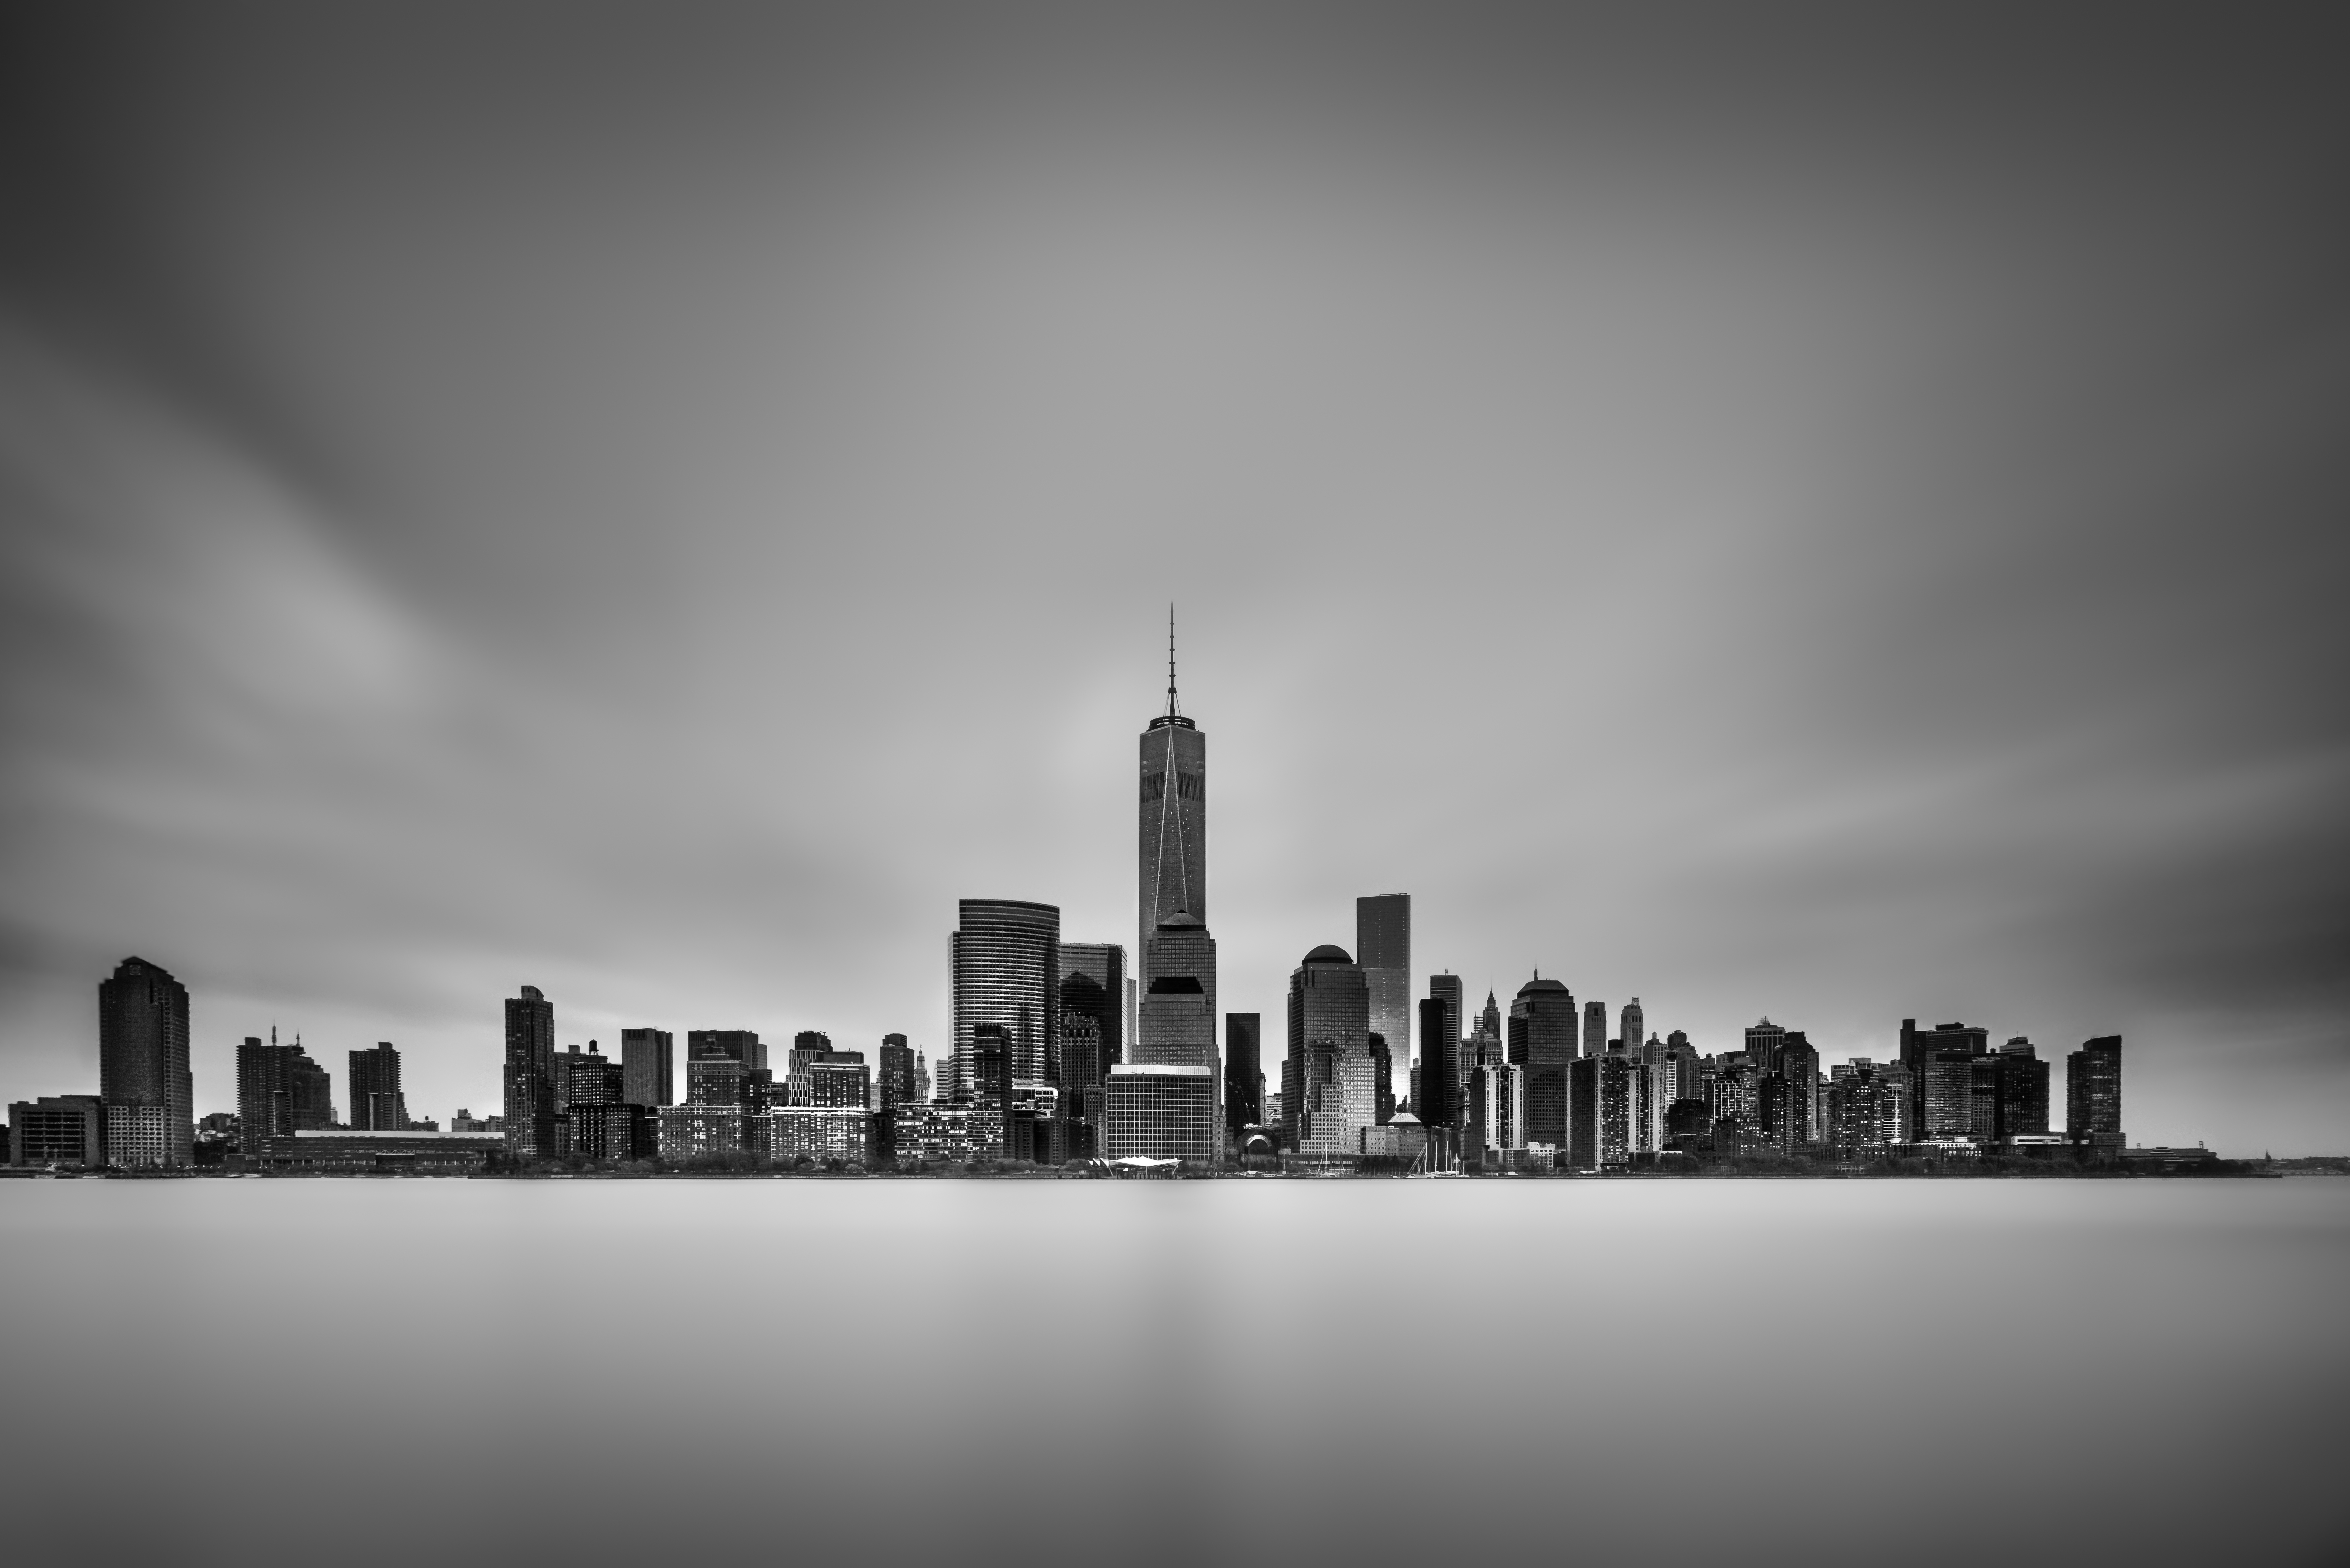 NYC: Manhattan Skyline